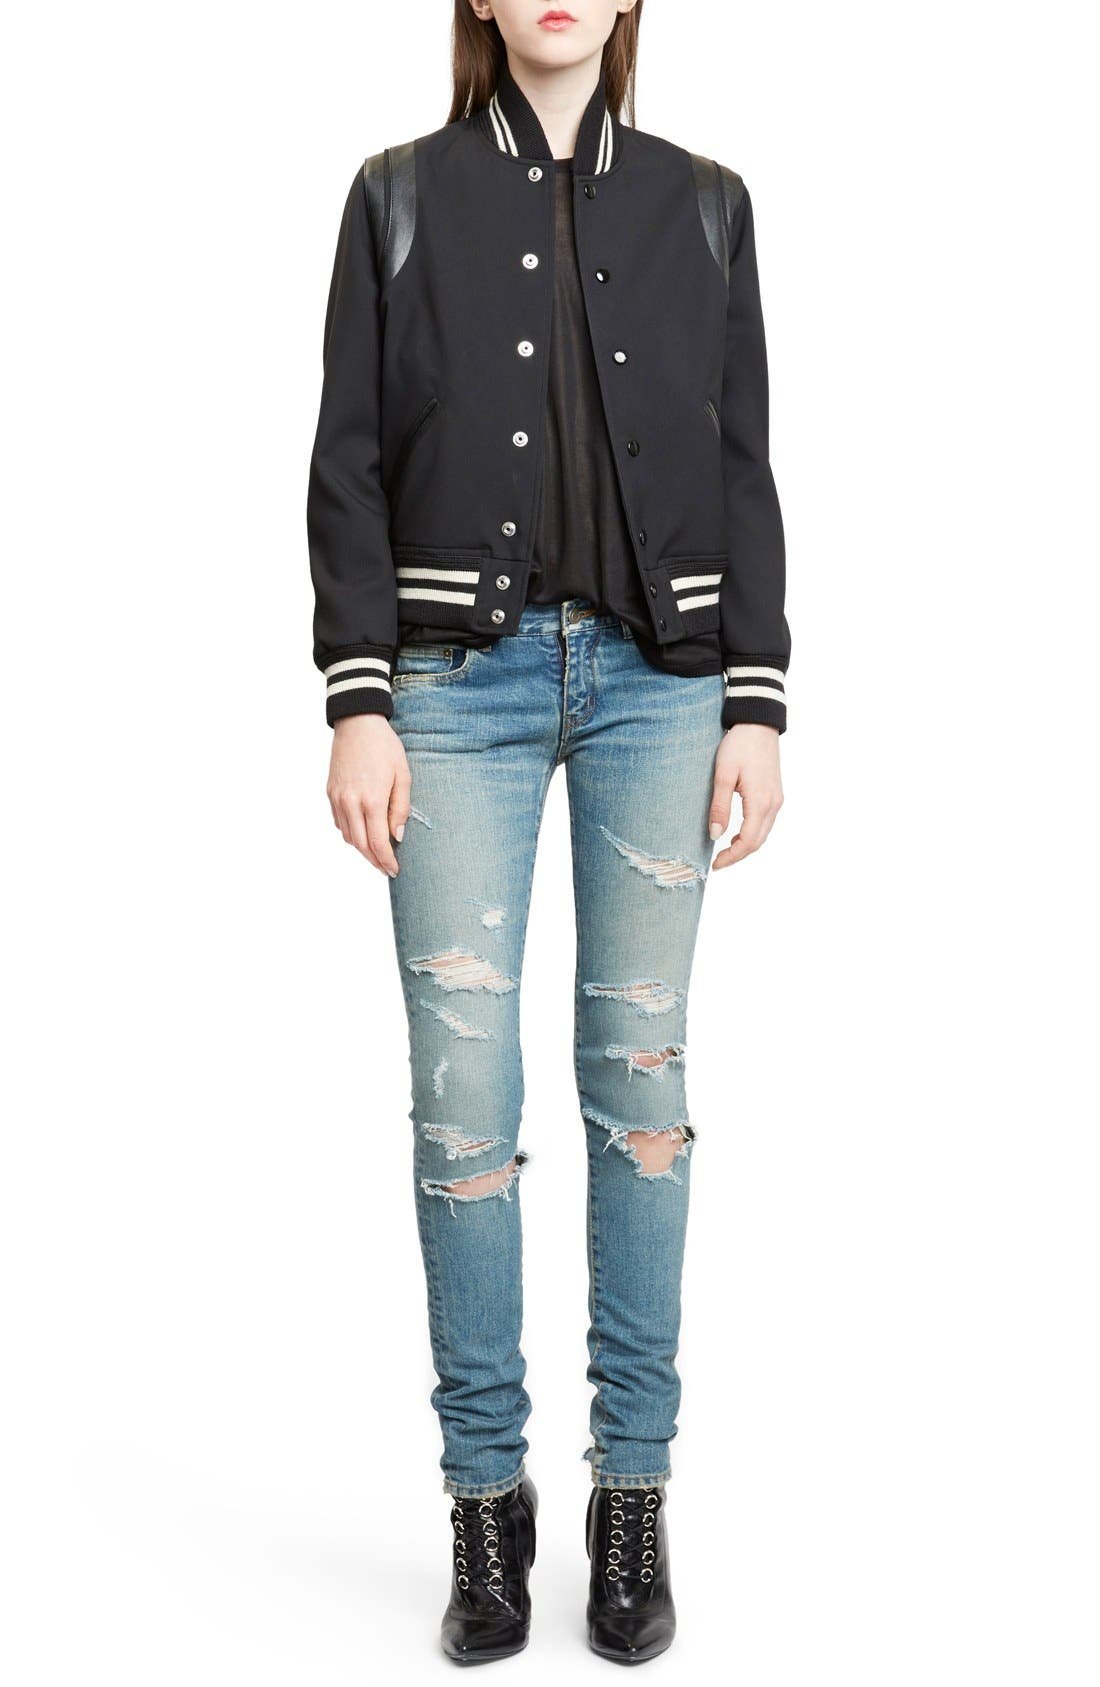 Saint Laurent 'Teddy' Black Leather Trim Bomber Jacket